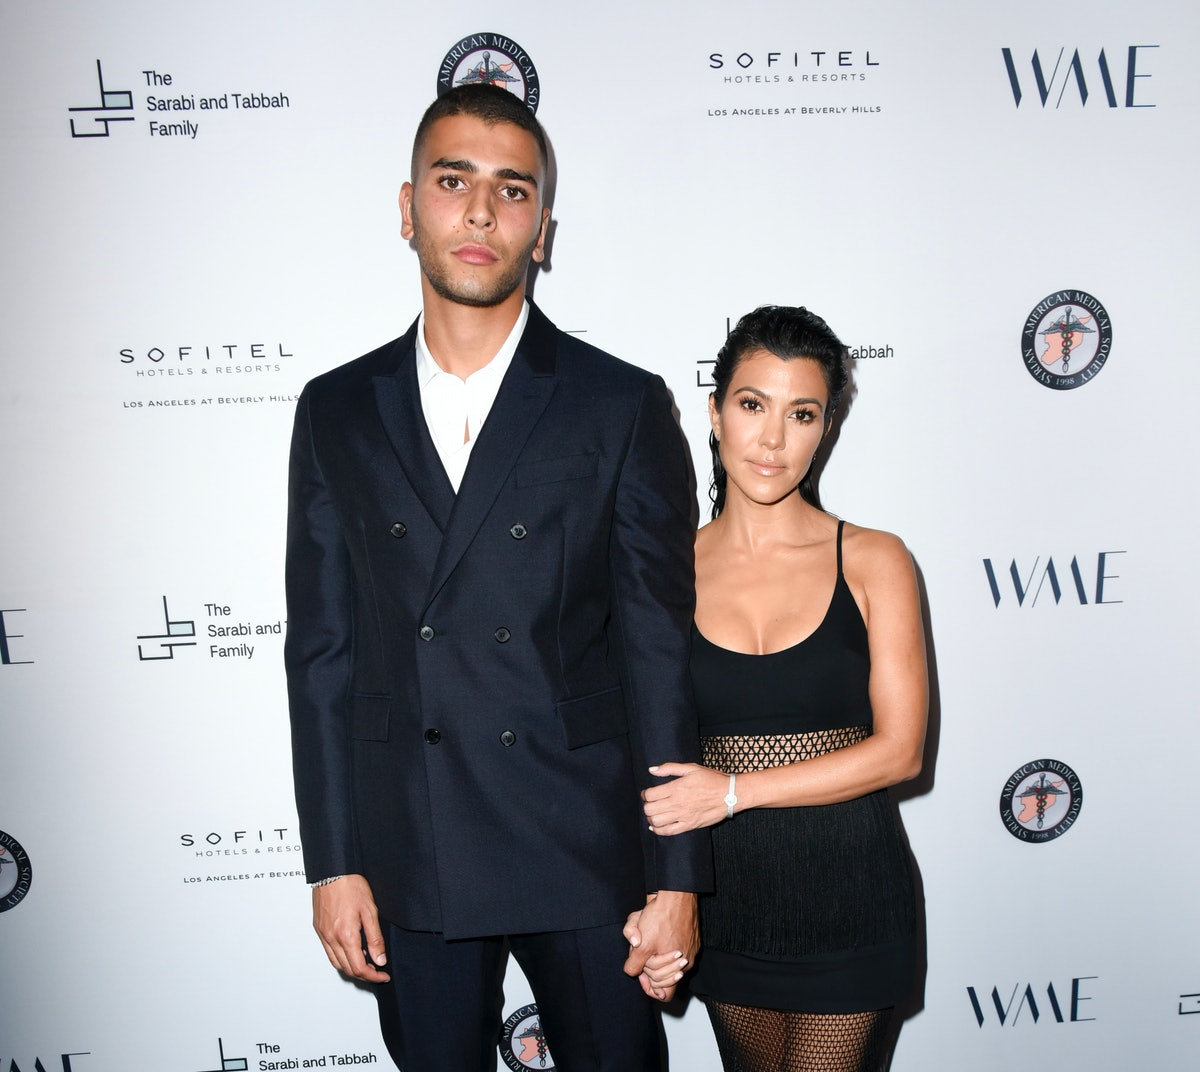 BEVERLY HILLS, CA - MAY 04:  Younes Bendjima and Kourtney Kardashian attend SAMS Benefit for Syrian Refugees on May 4, 2018 in Beverly Hills, California.  (Photo by Vivien Killilea/Getty Images for The Syrian American Medical Society (SAMS))